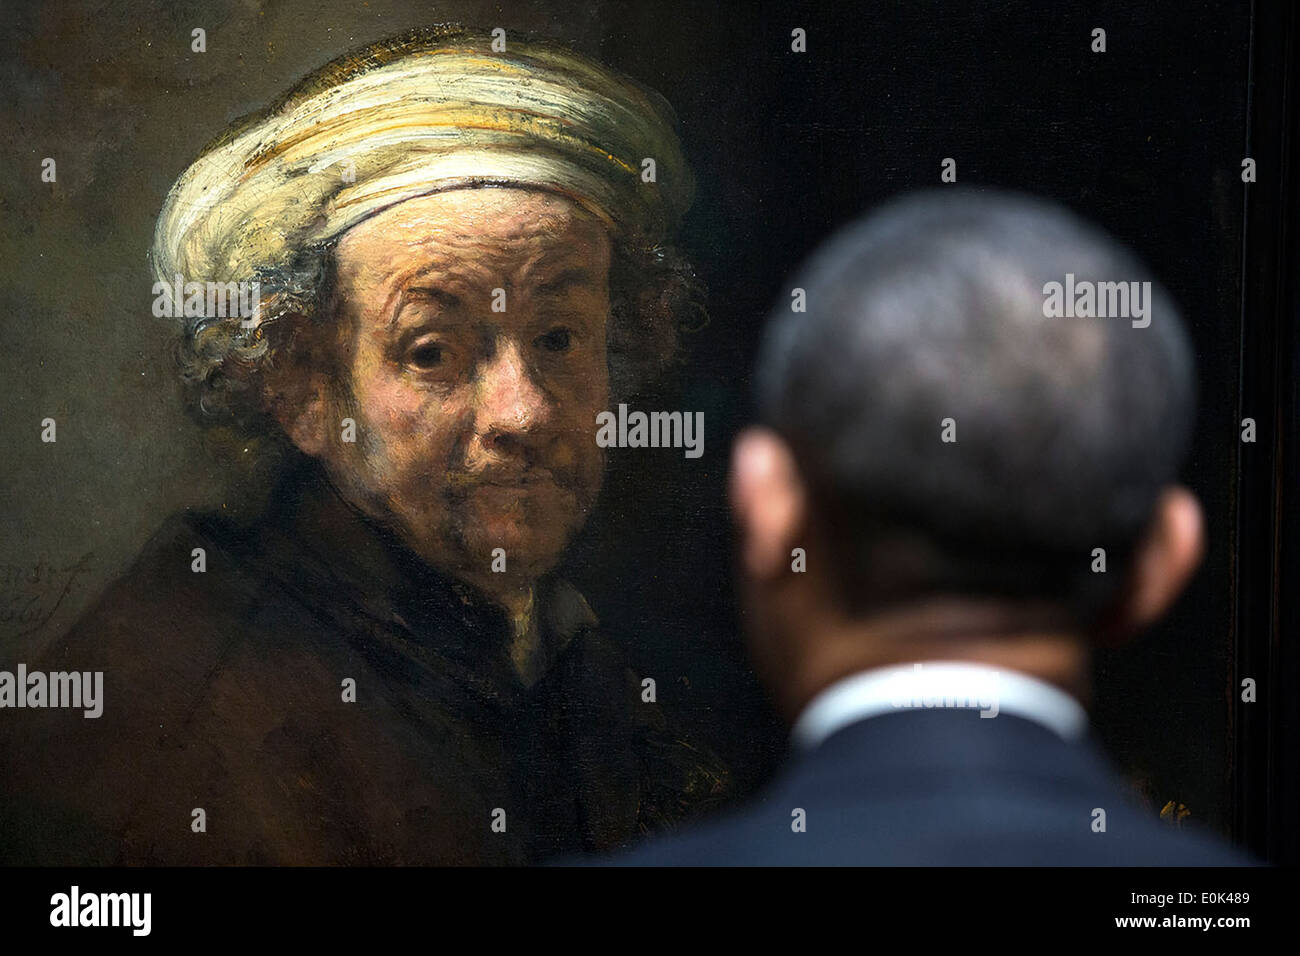 US President Barack Obama views Rembrandt's 'Self-portrait as the Apostle Paul' as he tours the Rijksmuseum March 24, 2014 in Amsterdam, Netherlands. - Stock Image